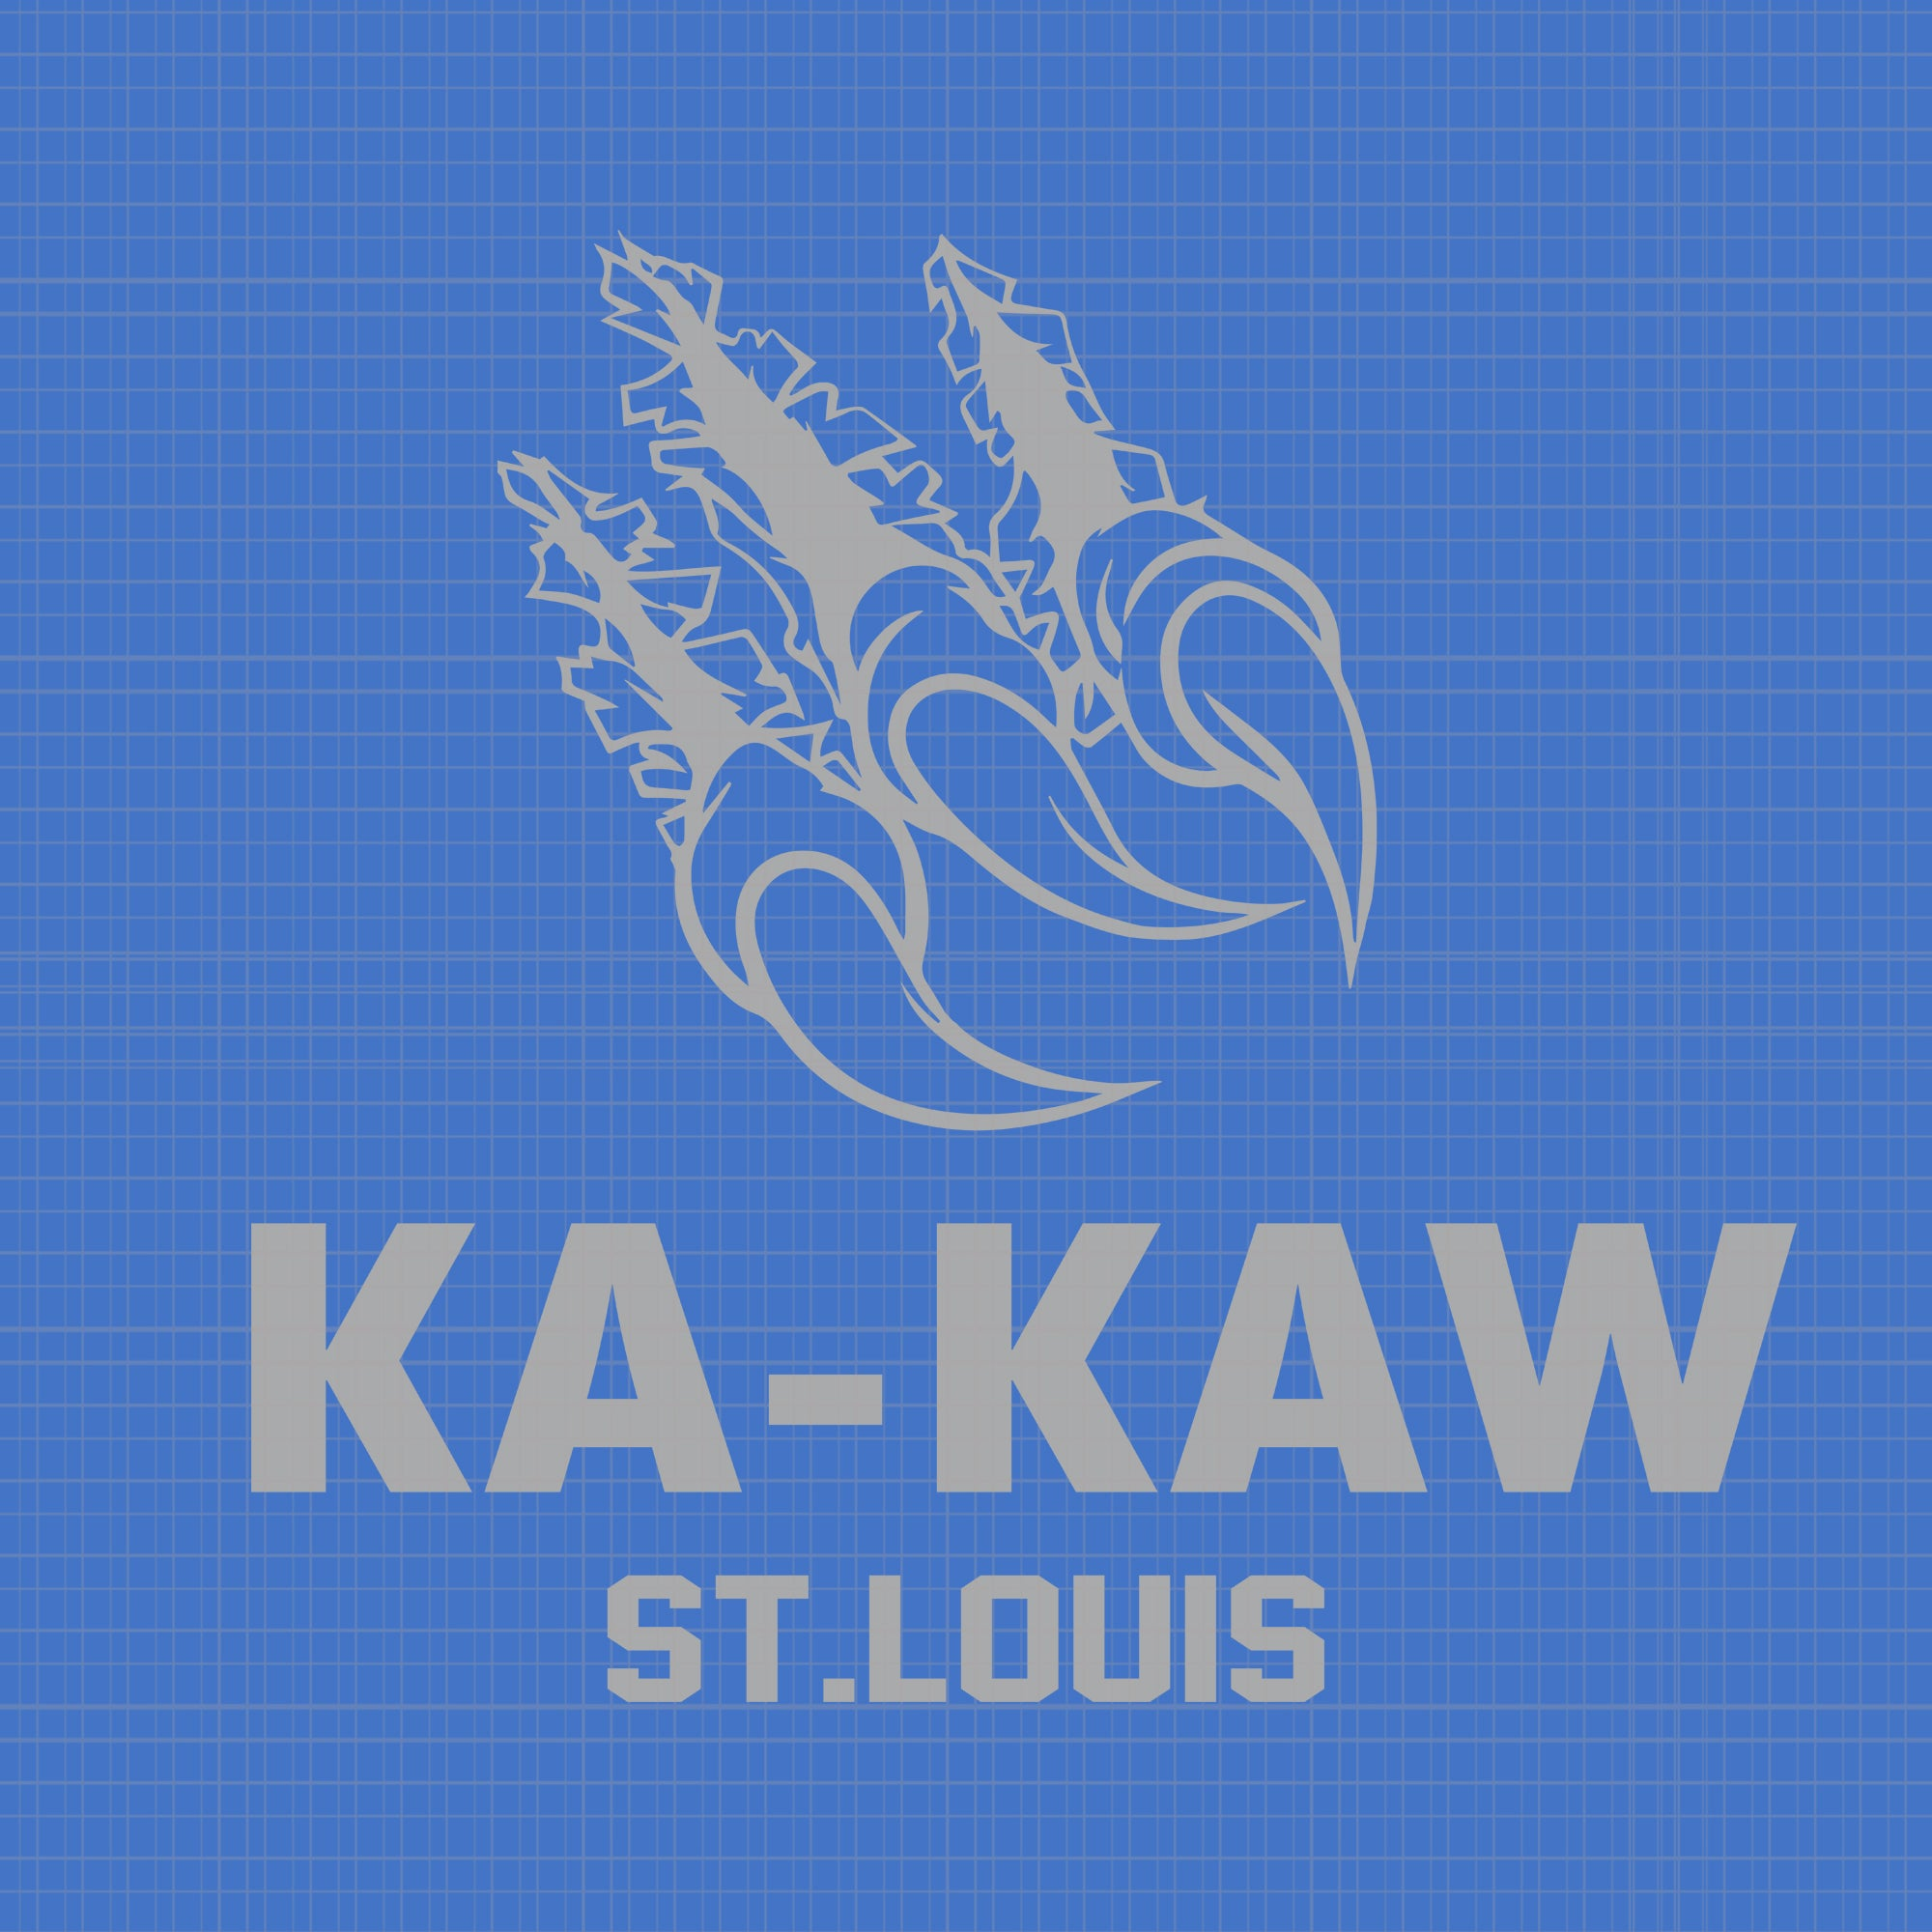 Ka-kaw St. louis svg, battlehawks football st louis xfl ka-kaw svg, ka-kaw nation st.louis svg, ka-kaw nation st.louis png, ka-kaw nation st.louis